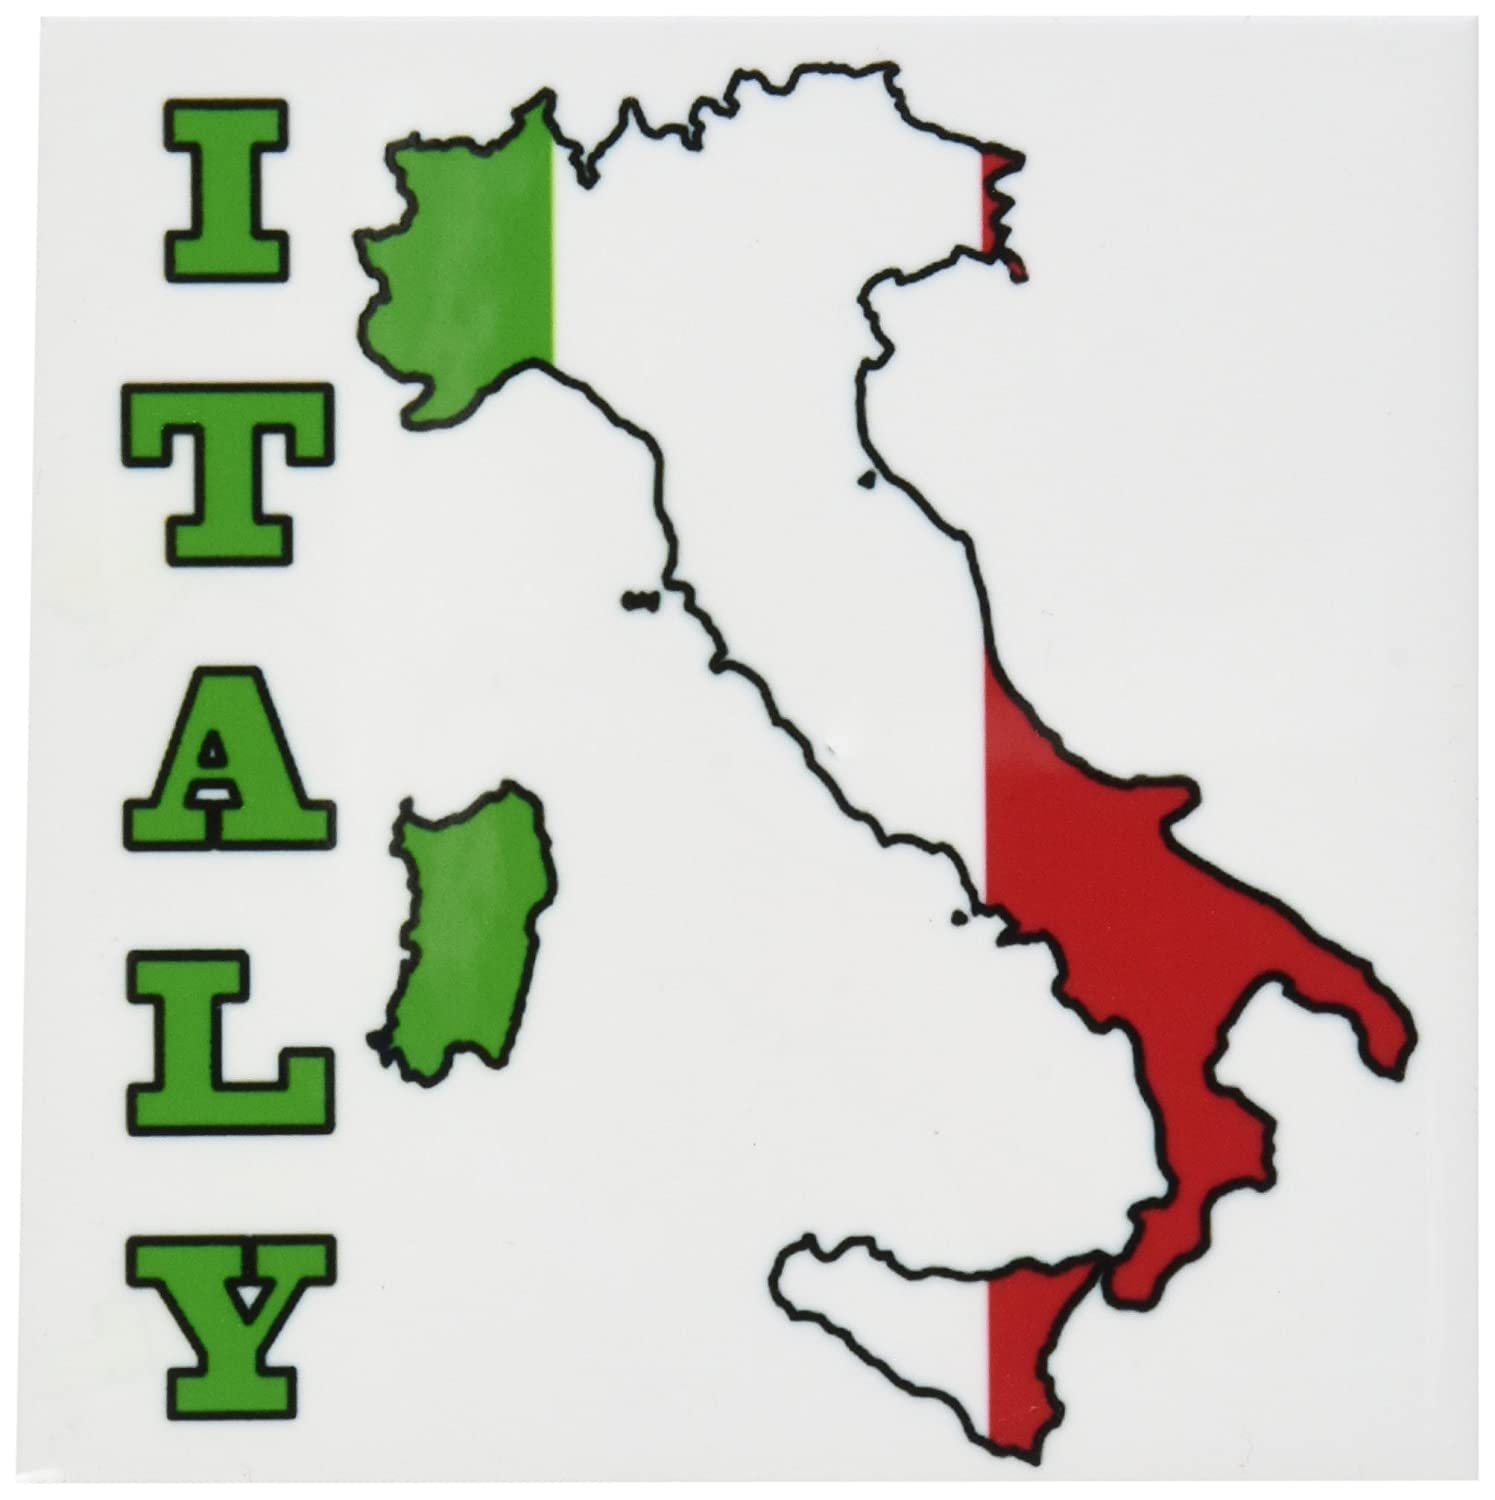 Italy Ceramic Tile Coasters Set of 4 3dRose cst/_63167/_3 The Flag of Italy in The Outline Map of The Country and Name